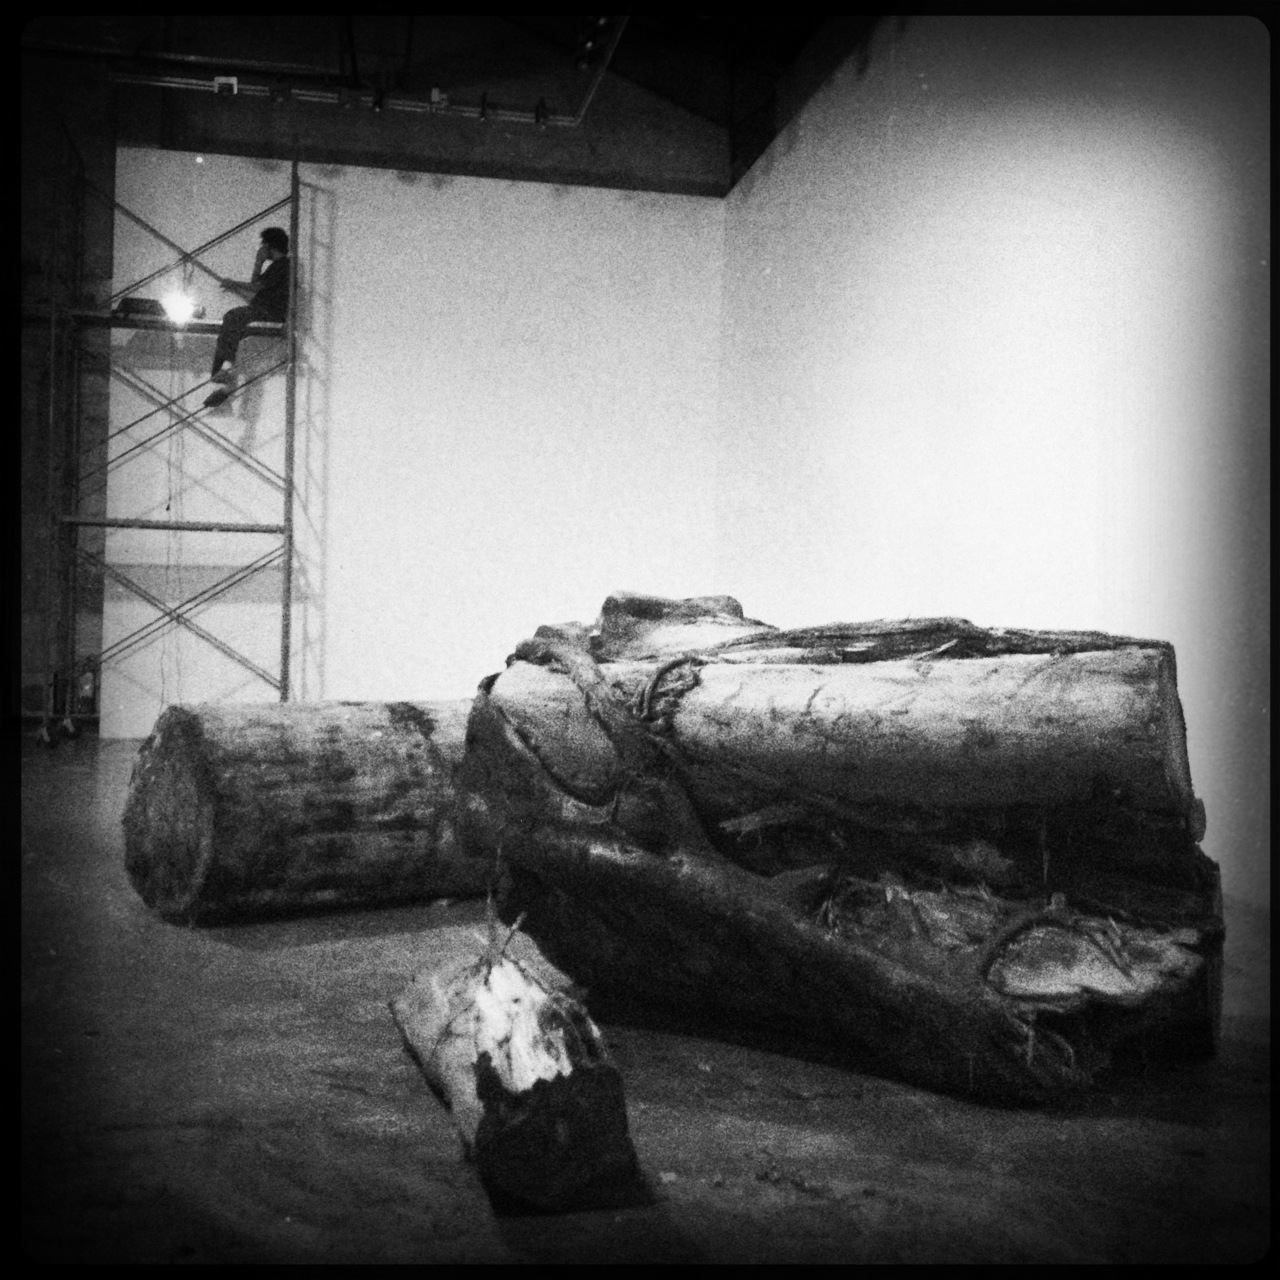 Logs that flattened communities and desteoyed lives during typhoon #sendong. Installation by @ang_kiri. Opening June 7 at Finale Art File